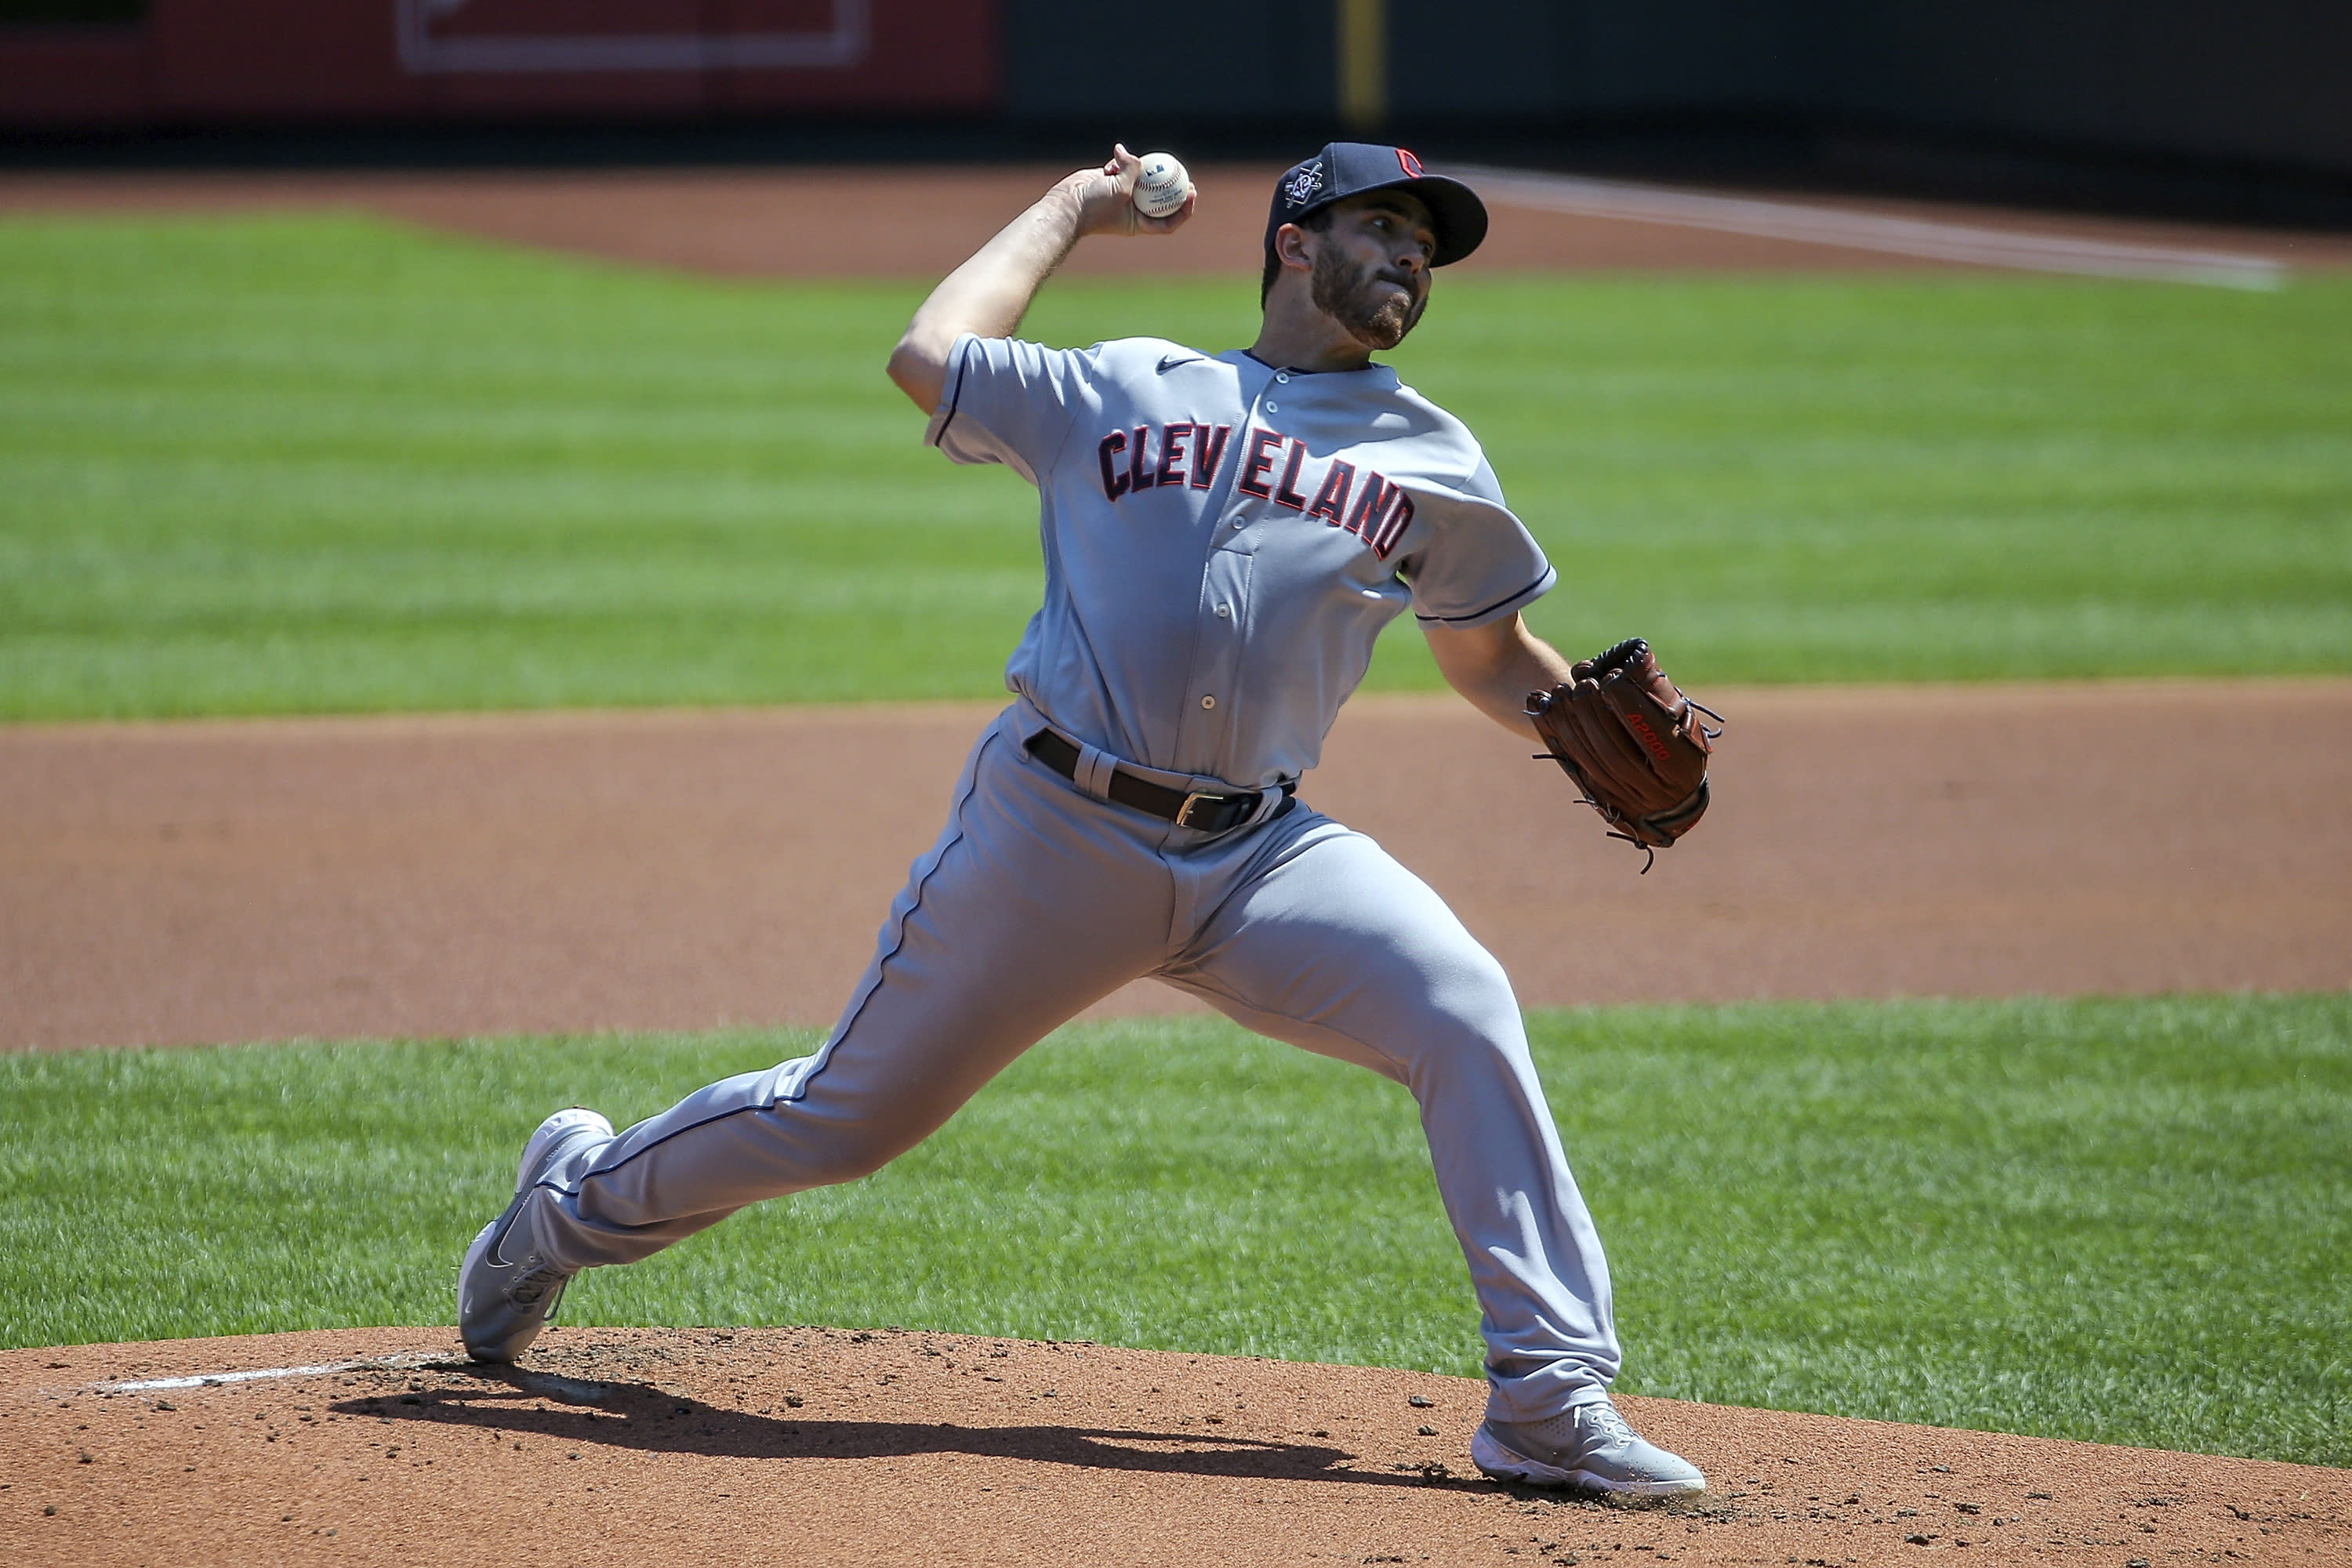 Cleveland Indians starting pitcher Aaron Civale (43) delivers during the first inning of a baseball game against the St. Louis Cardinals Sunday, Aug. 30, 2020, in St. Louis. (AP Photo/Scott Kane)